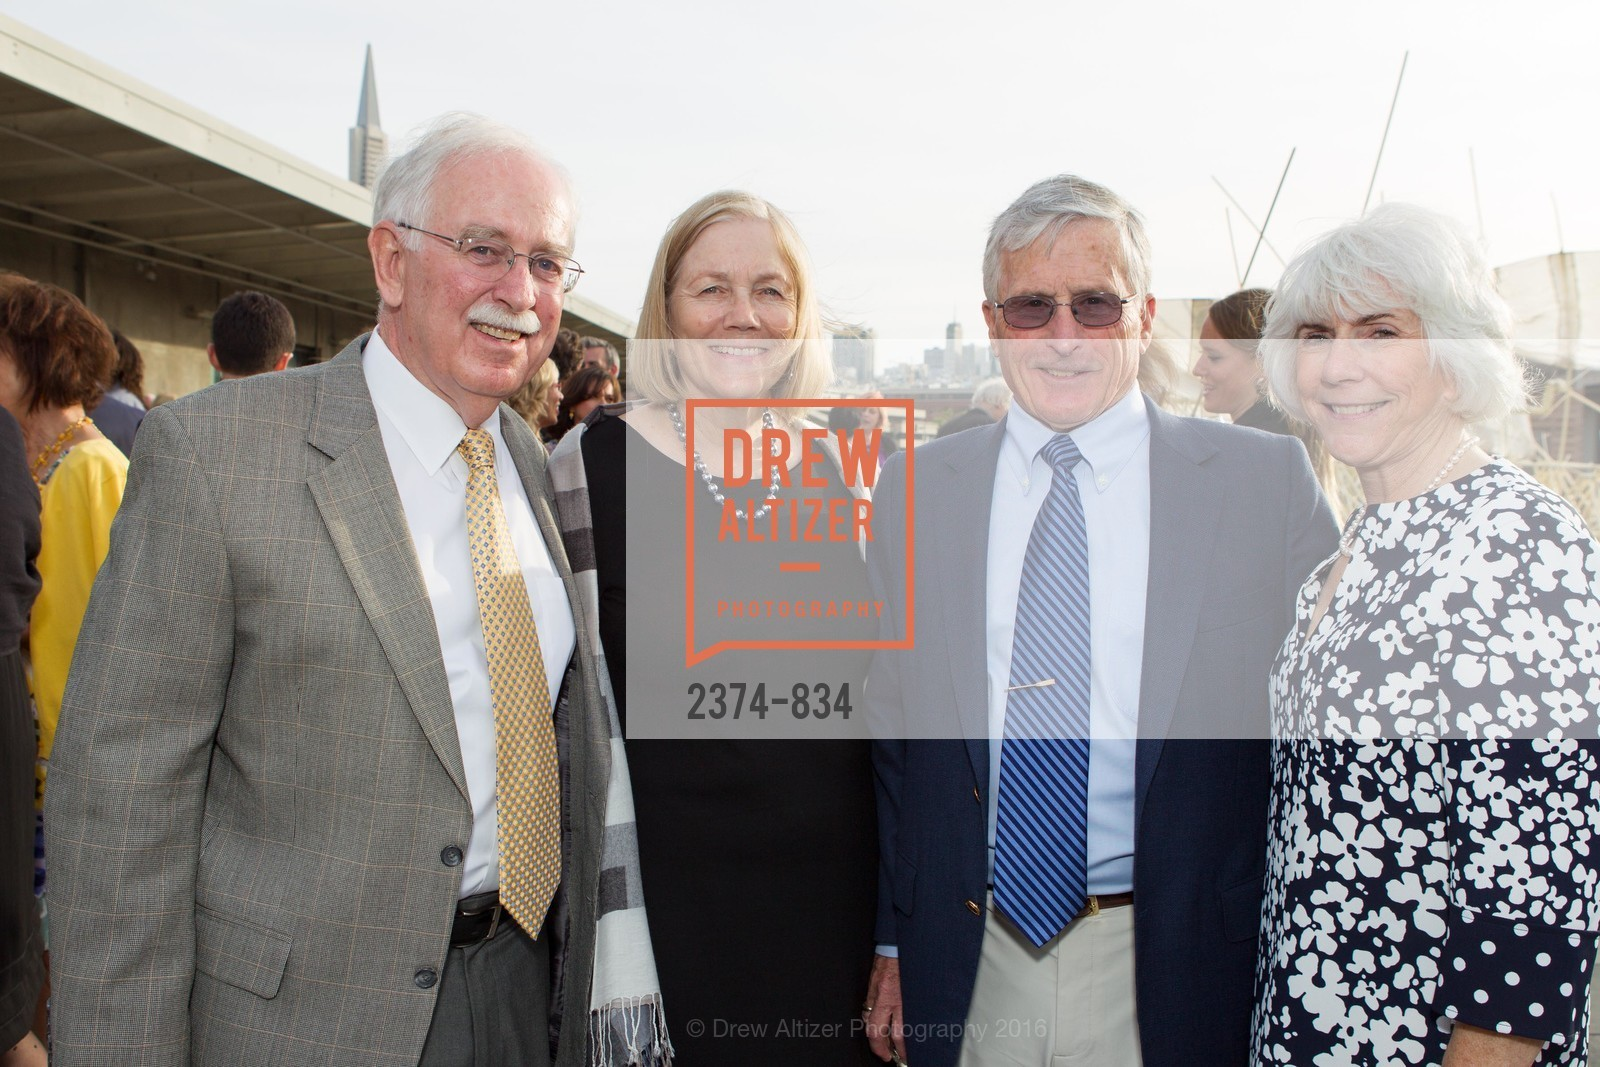 Brian Tulloch, Kristi Rasmussen, Scott Hindes, Nancy Hindes, Exploratorium Spring Gala, Exploratorium, 140515, May 15th, 2014,Drew Altizer, Drew Altizer Photography, full-service event agency, private events, San Francisco photographer, photographer California